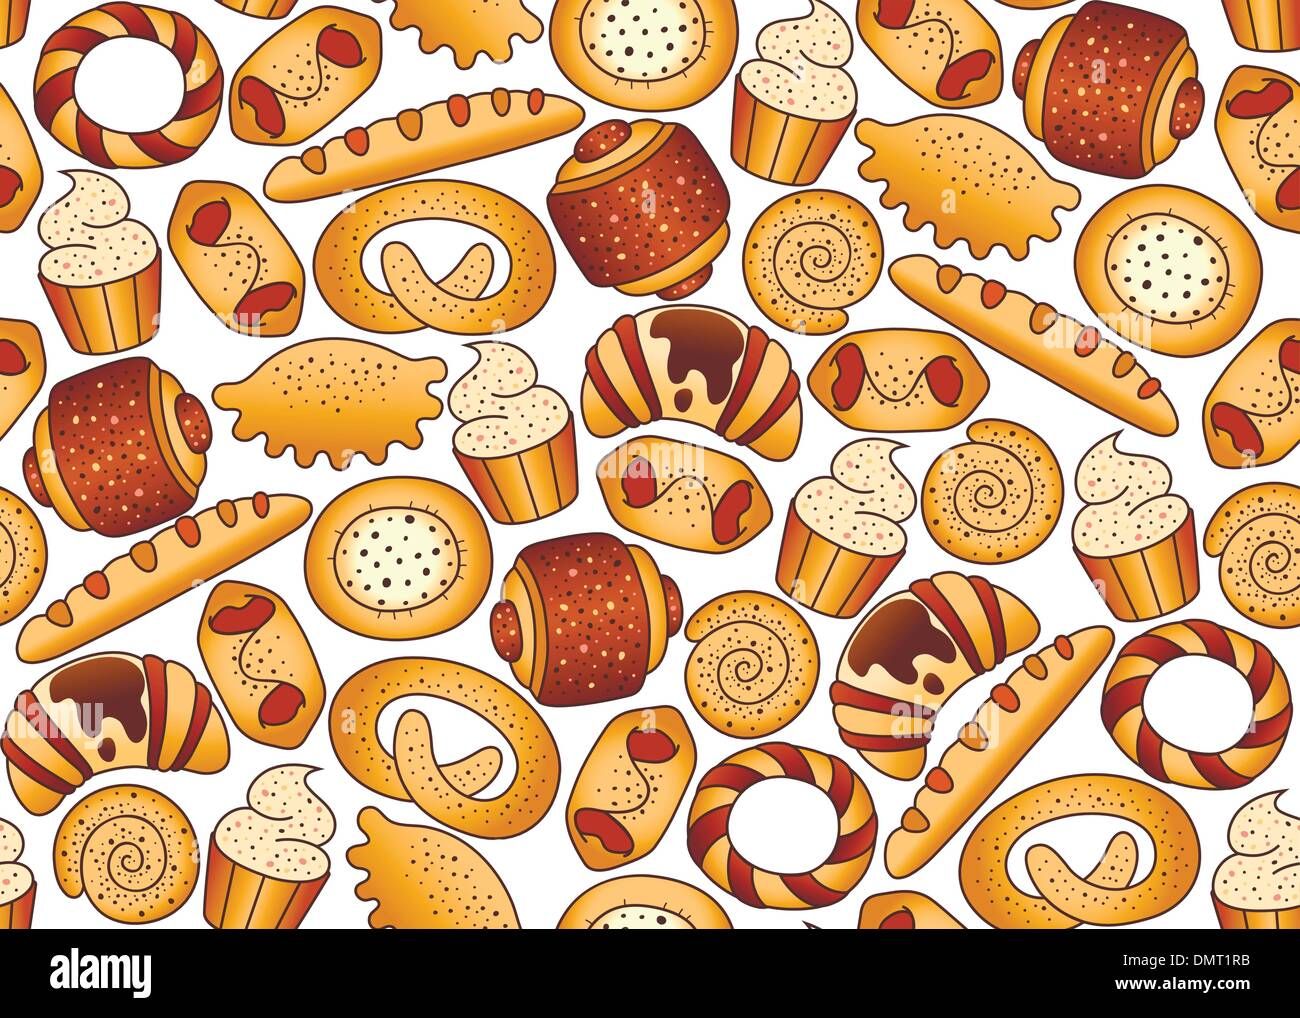 Seamless background with bakery products - Stock Vector